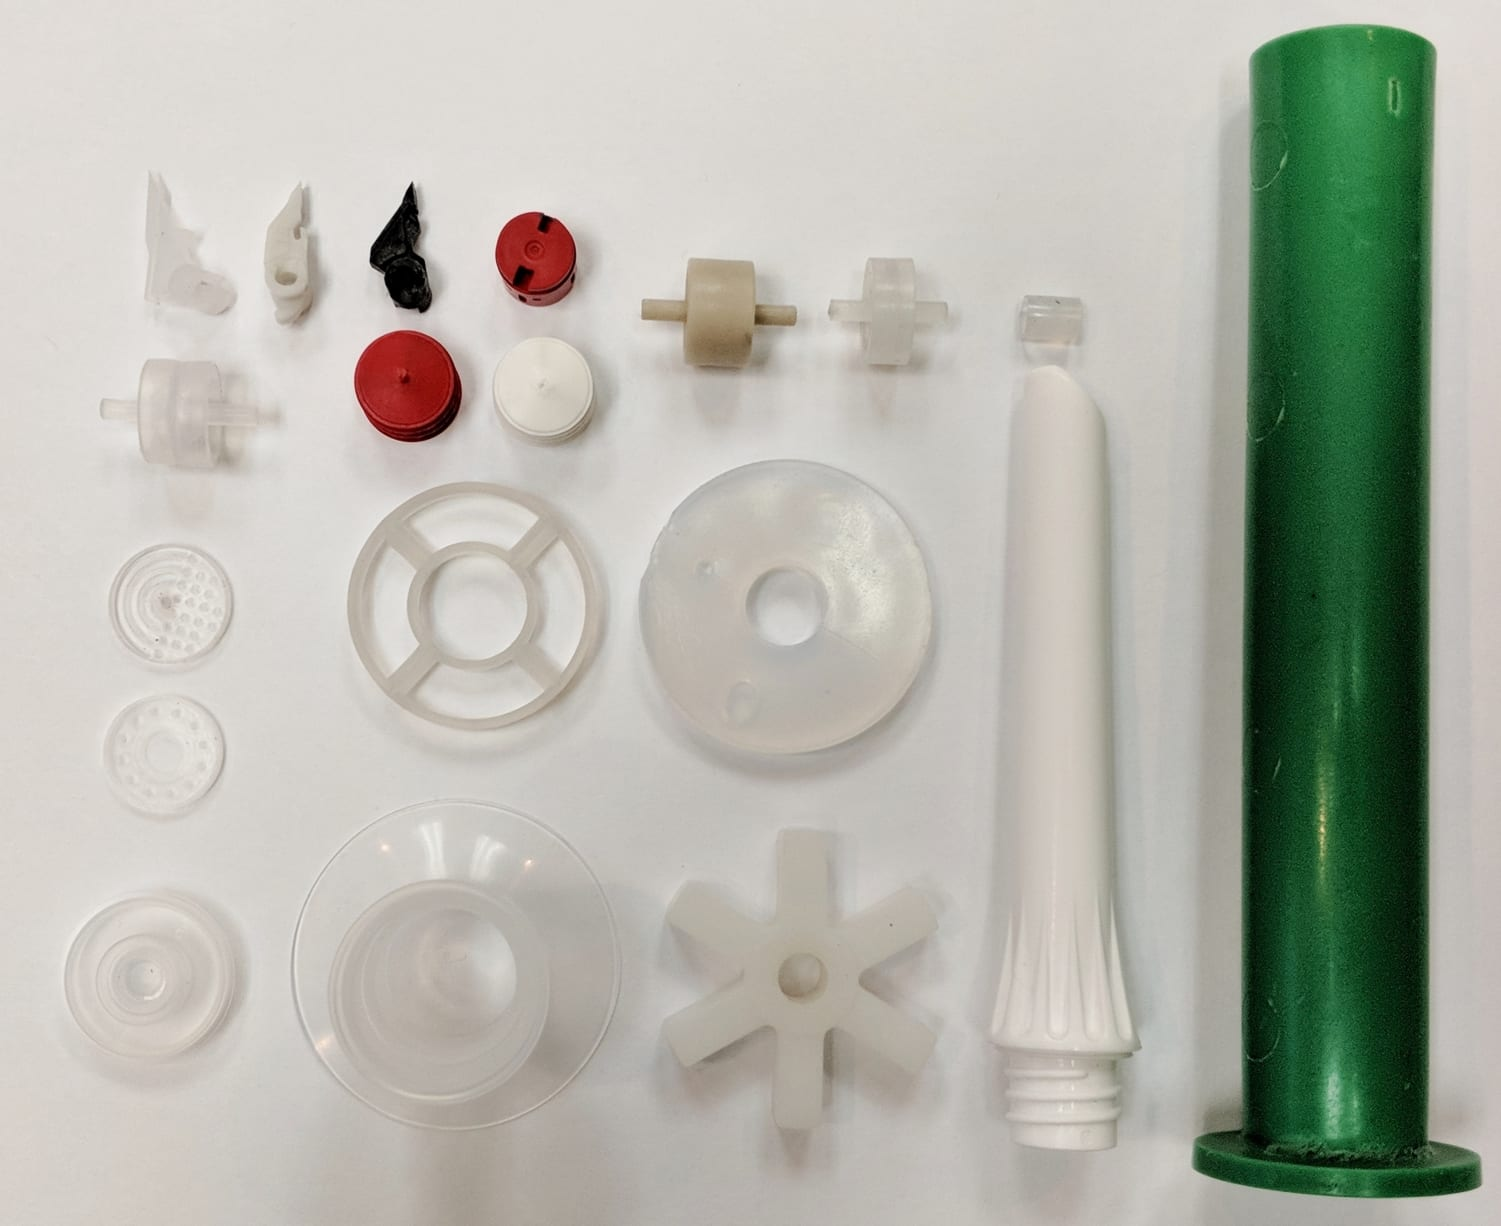 PFA (Fluoropolymer) Thermoplastic Components